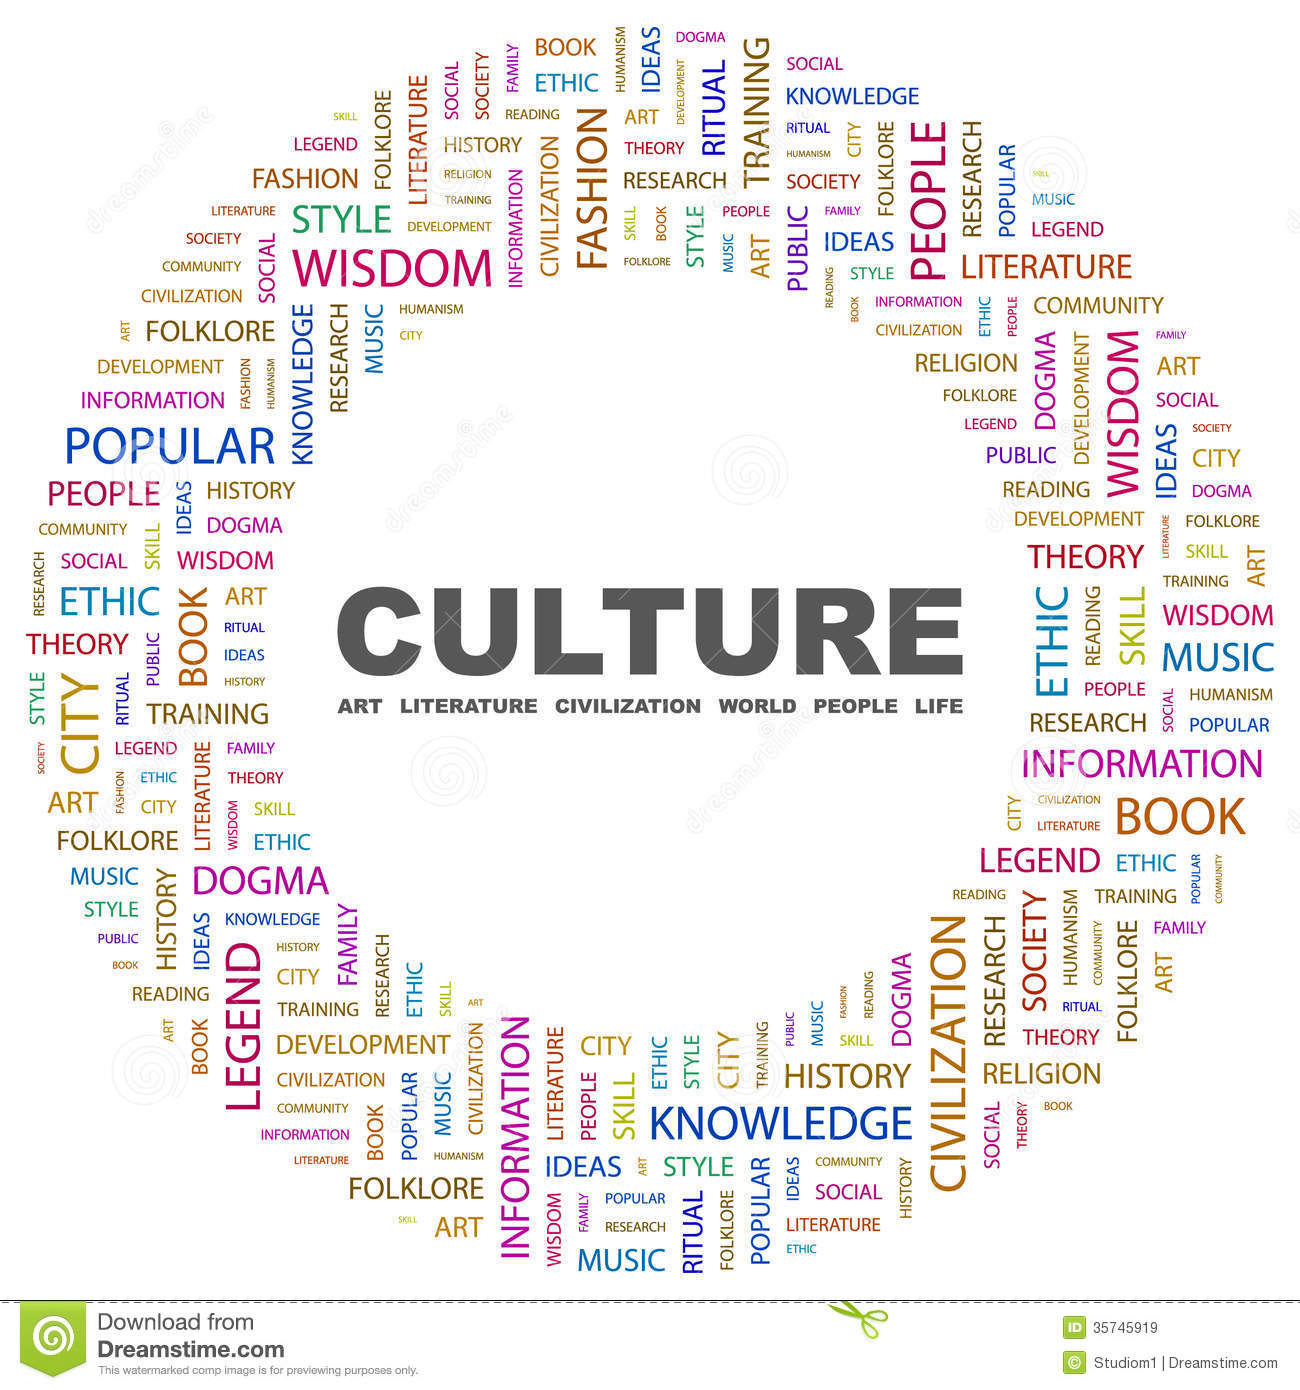 globalization of culture in society Post international politics, world risk society, the thesis of mcdonaldization, glocalization and a few other derivations of these  cultural globalization.